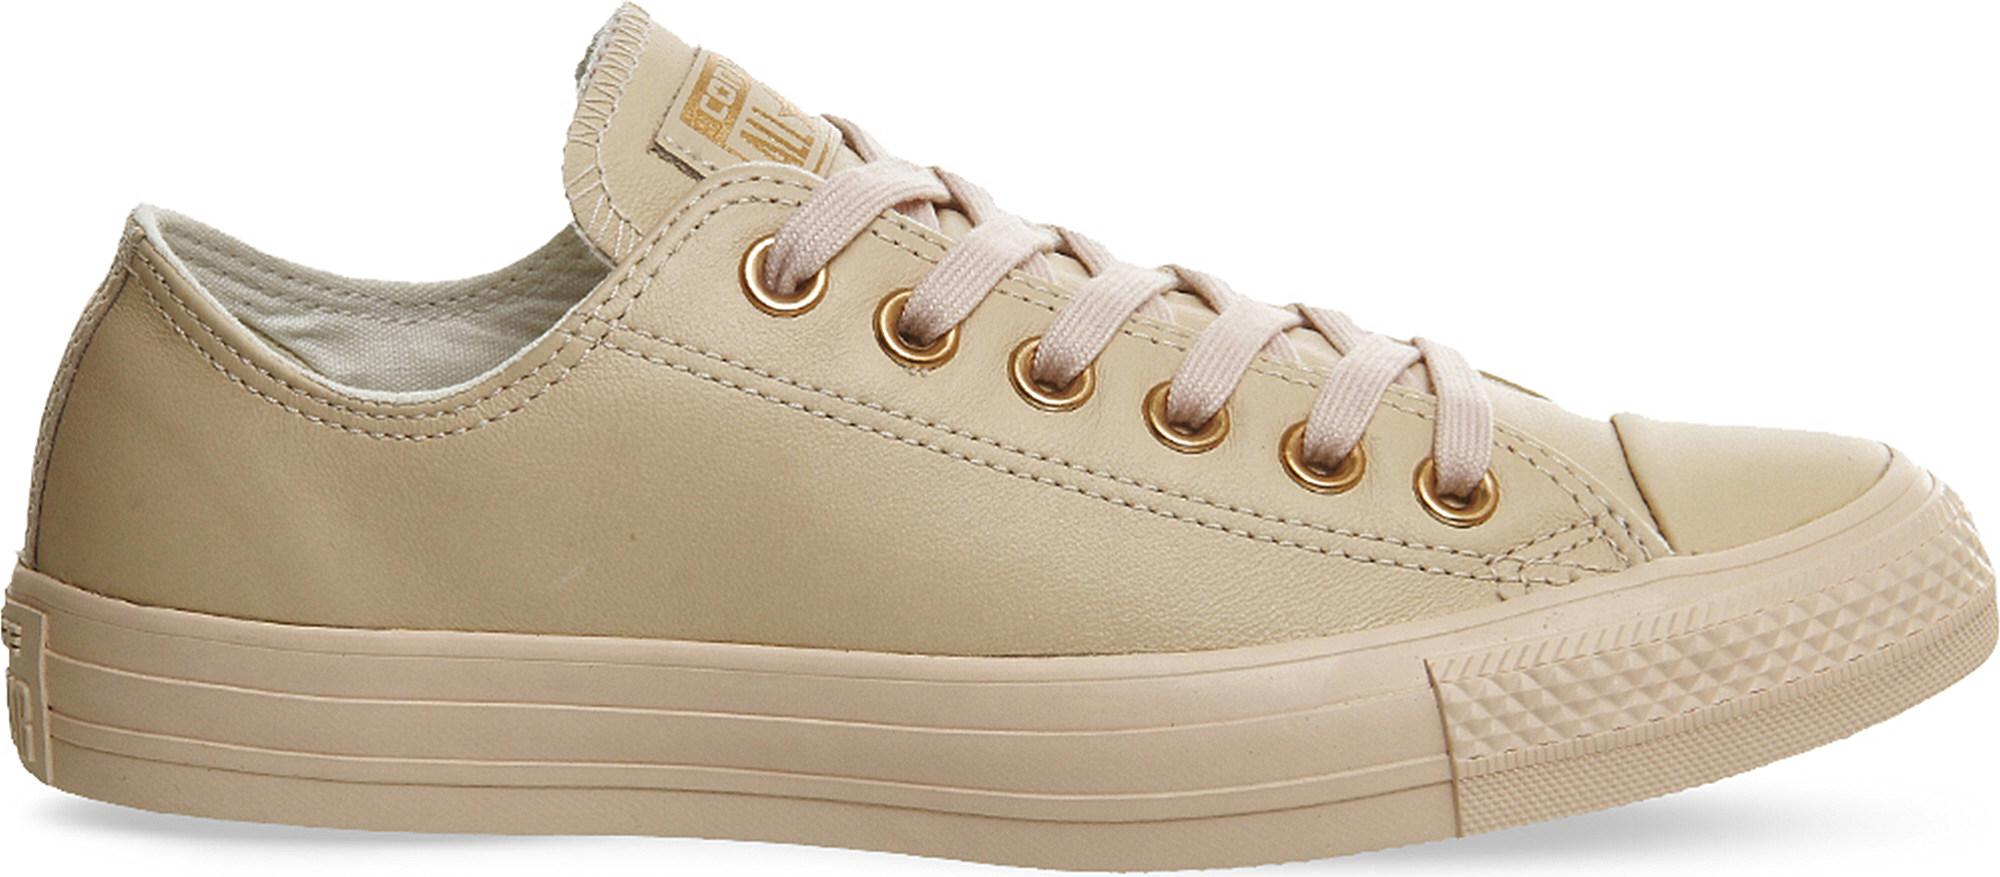 converse all star beige leather